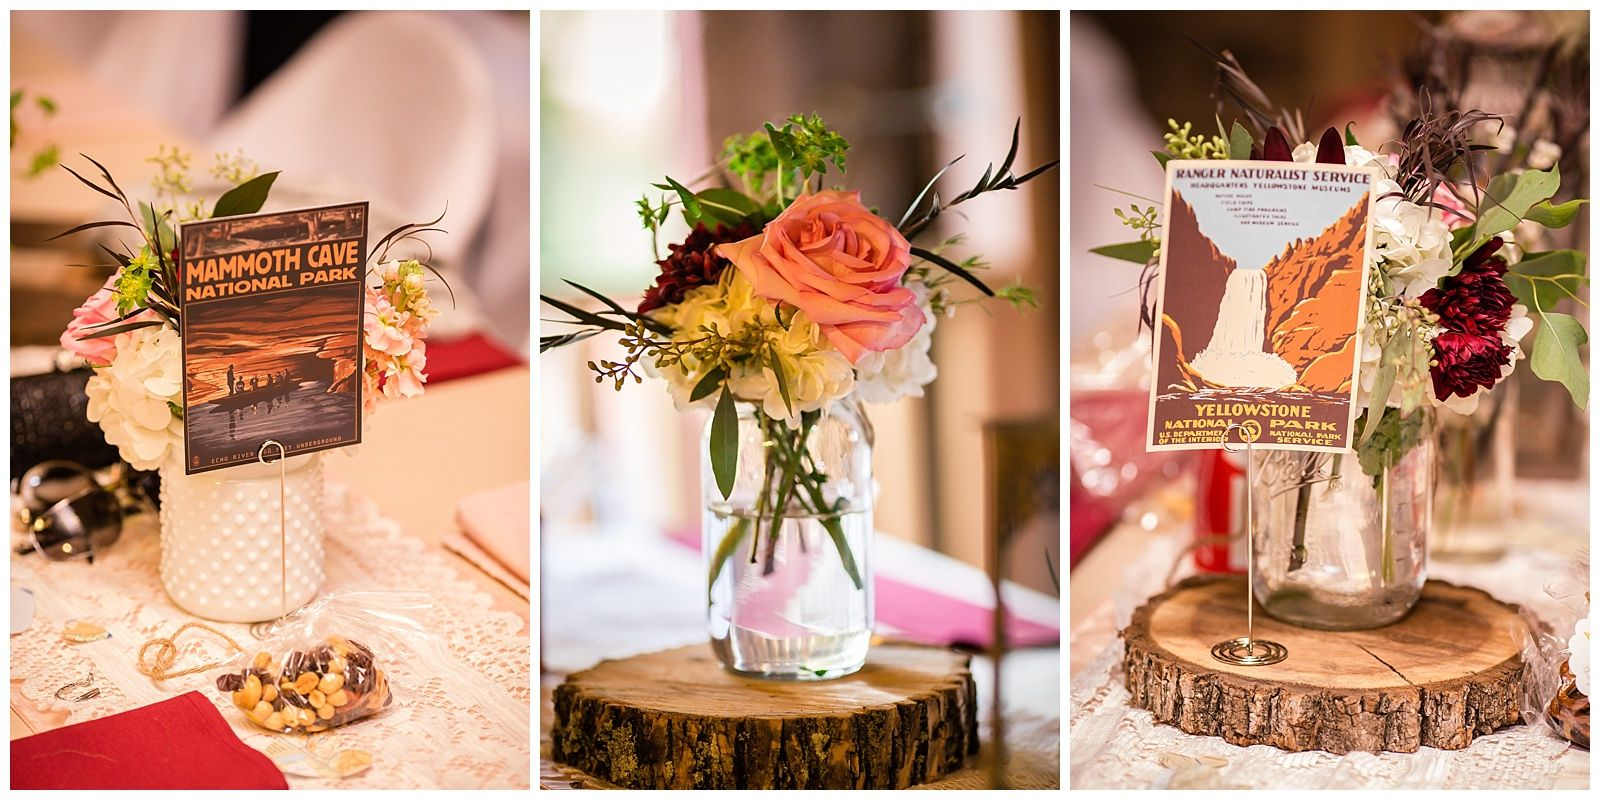 National Parkthemed centerpieces from a rustic wedding at